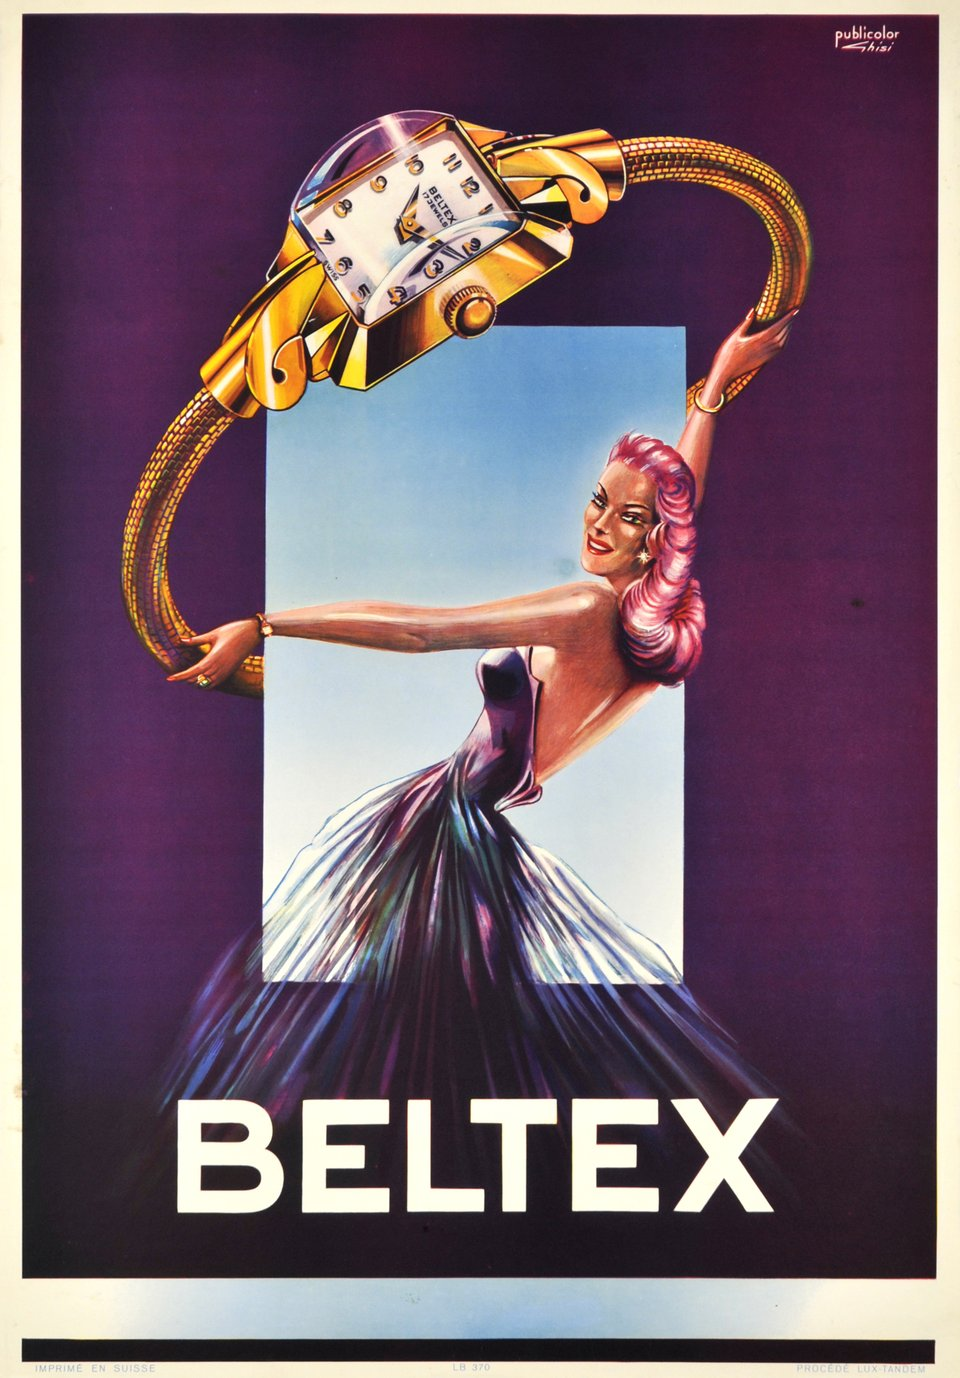 Beltex – Affiche ancienne – GHISI – 1950